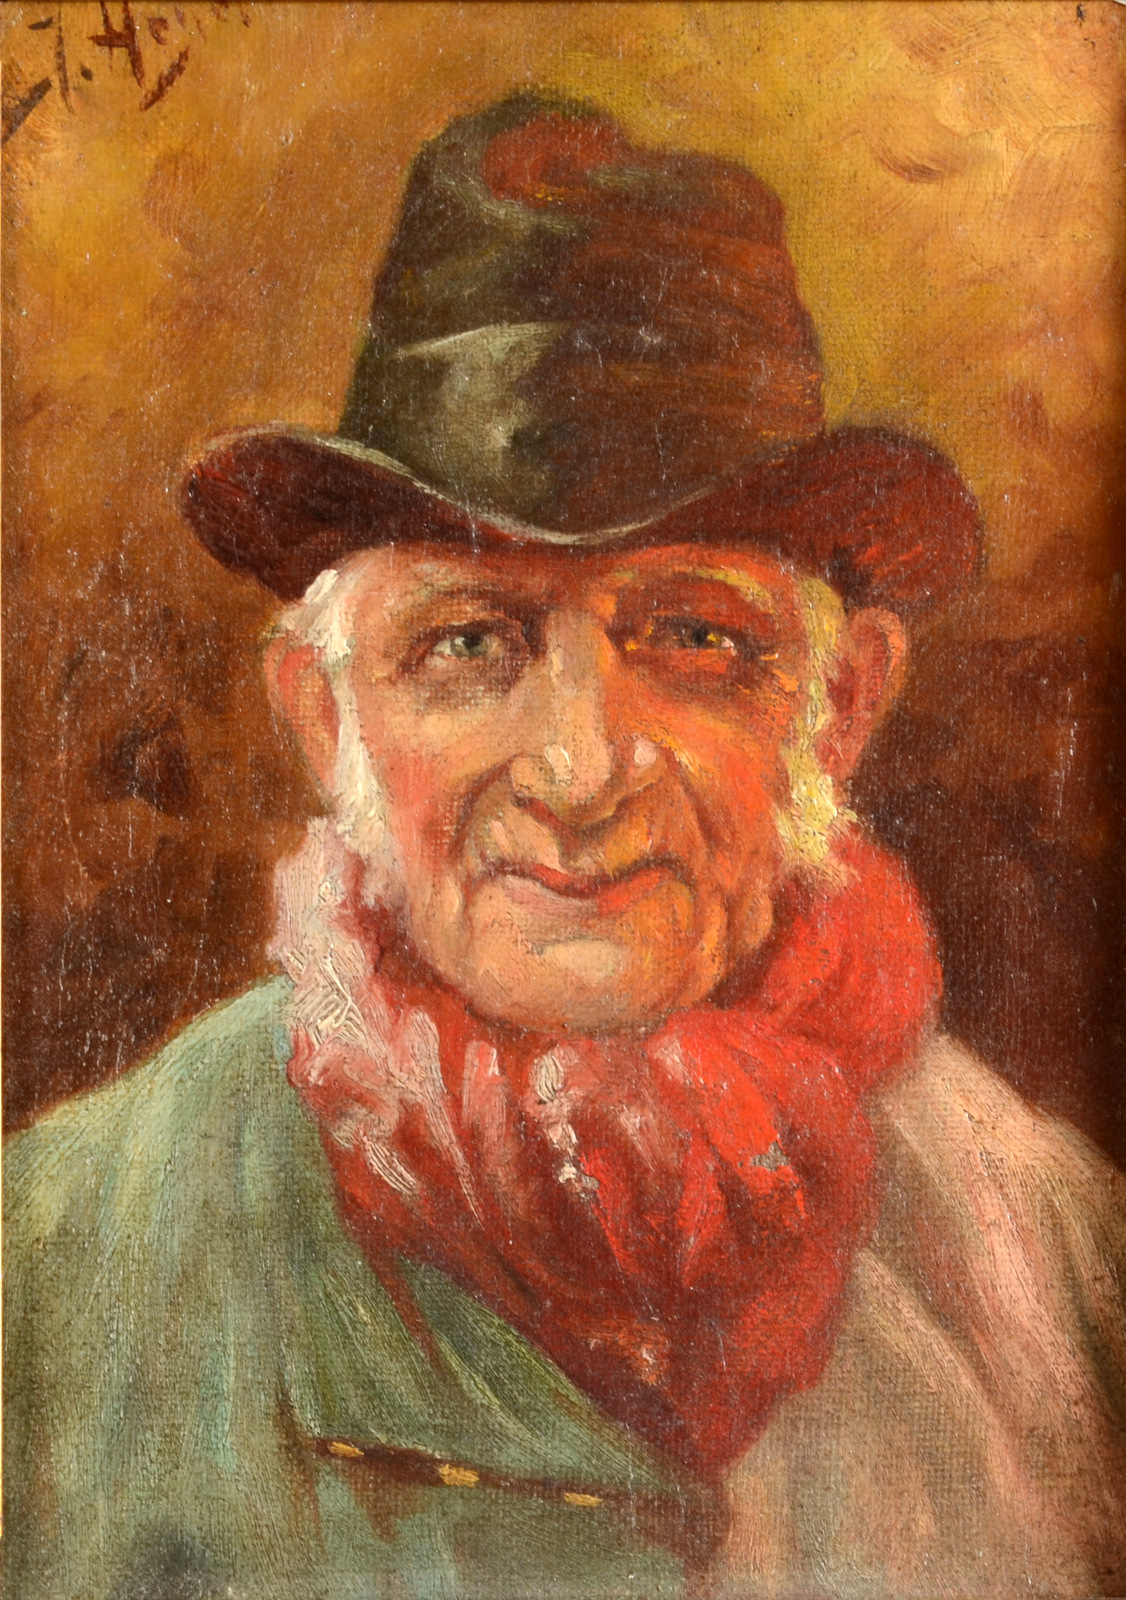 Lot 8 - Portrait of a male Oil on canvas Indistinctly signed 21 x 15 cm